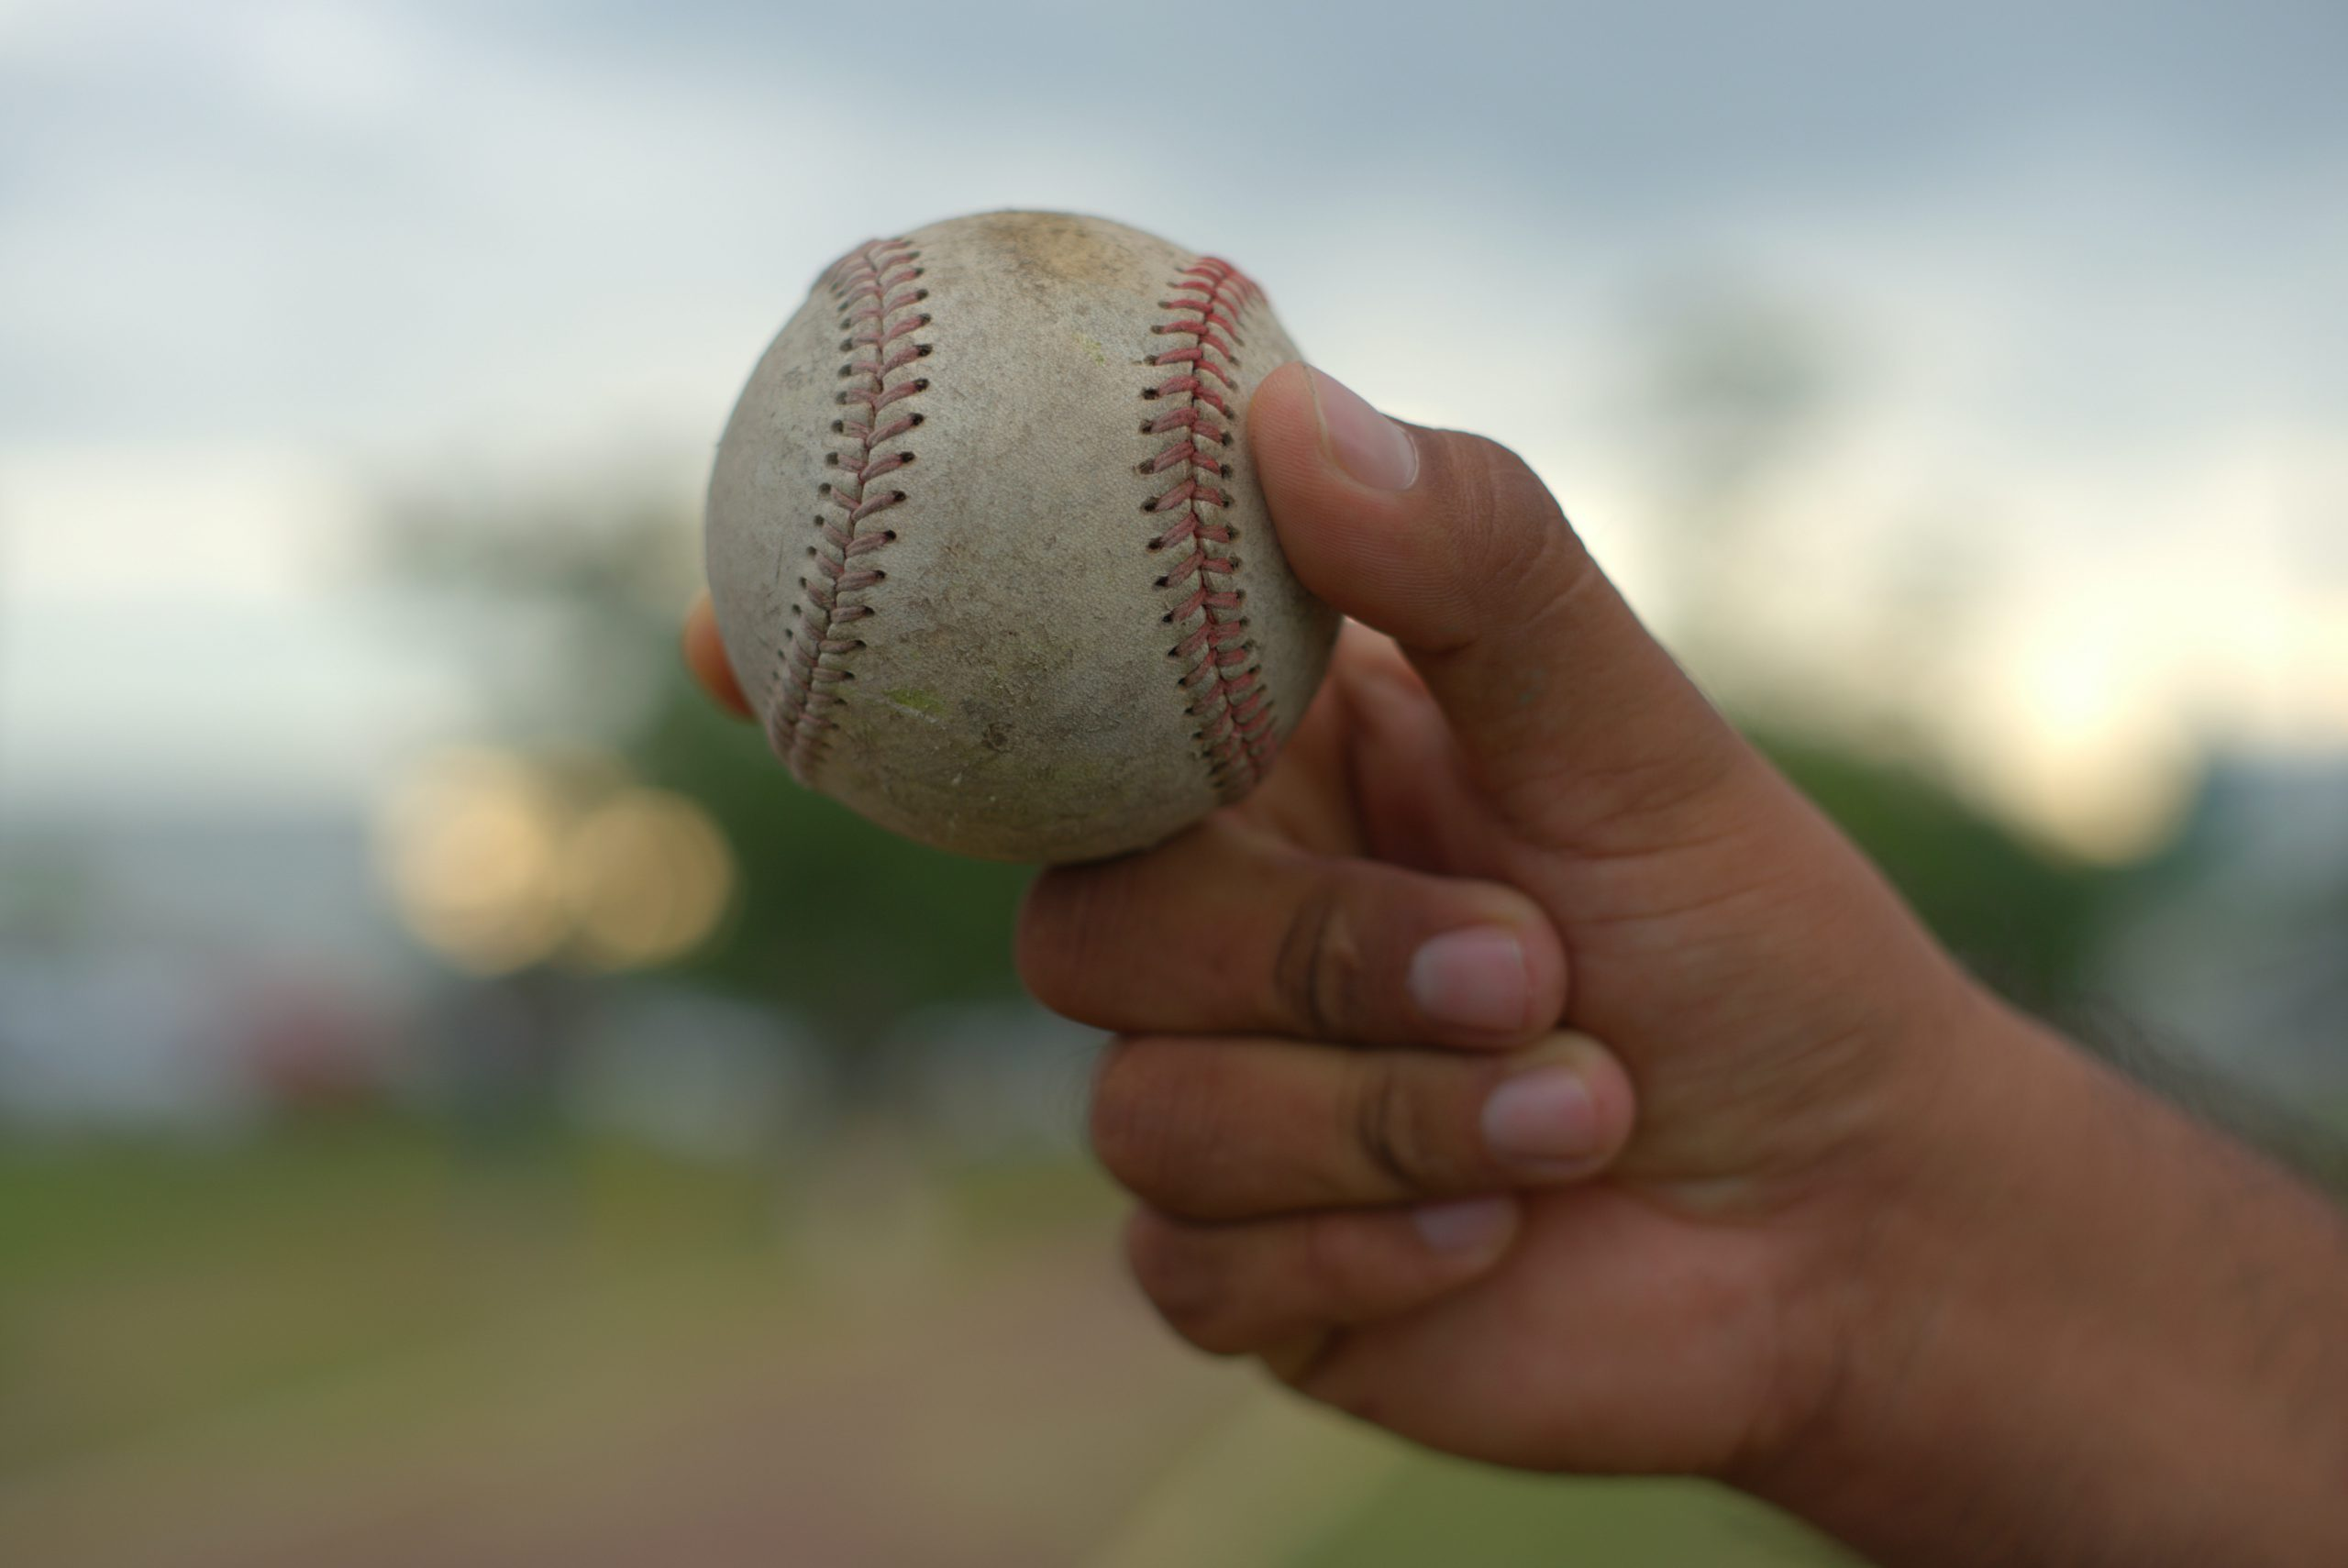 Winning: One Pitch At a Time